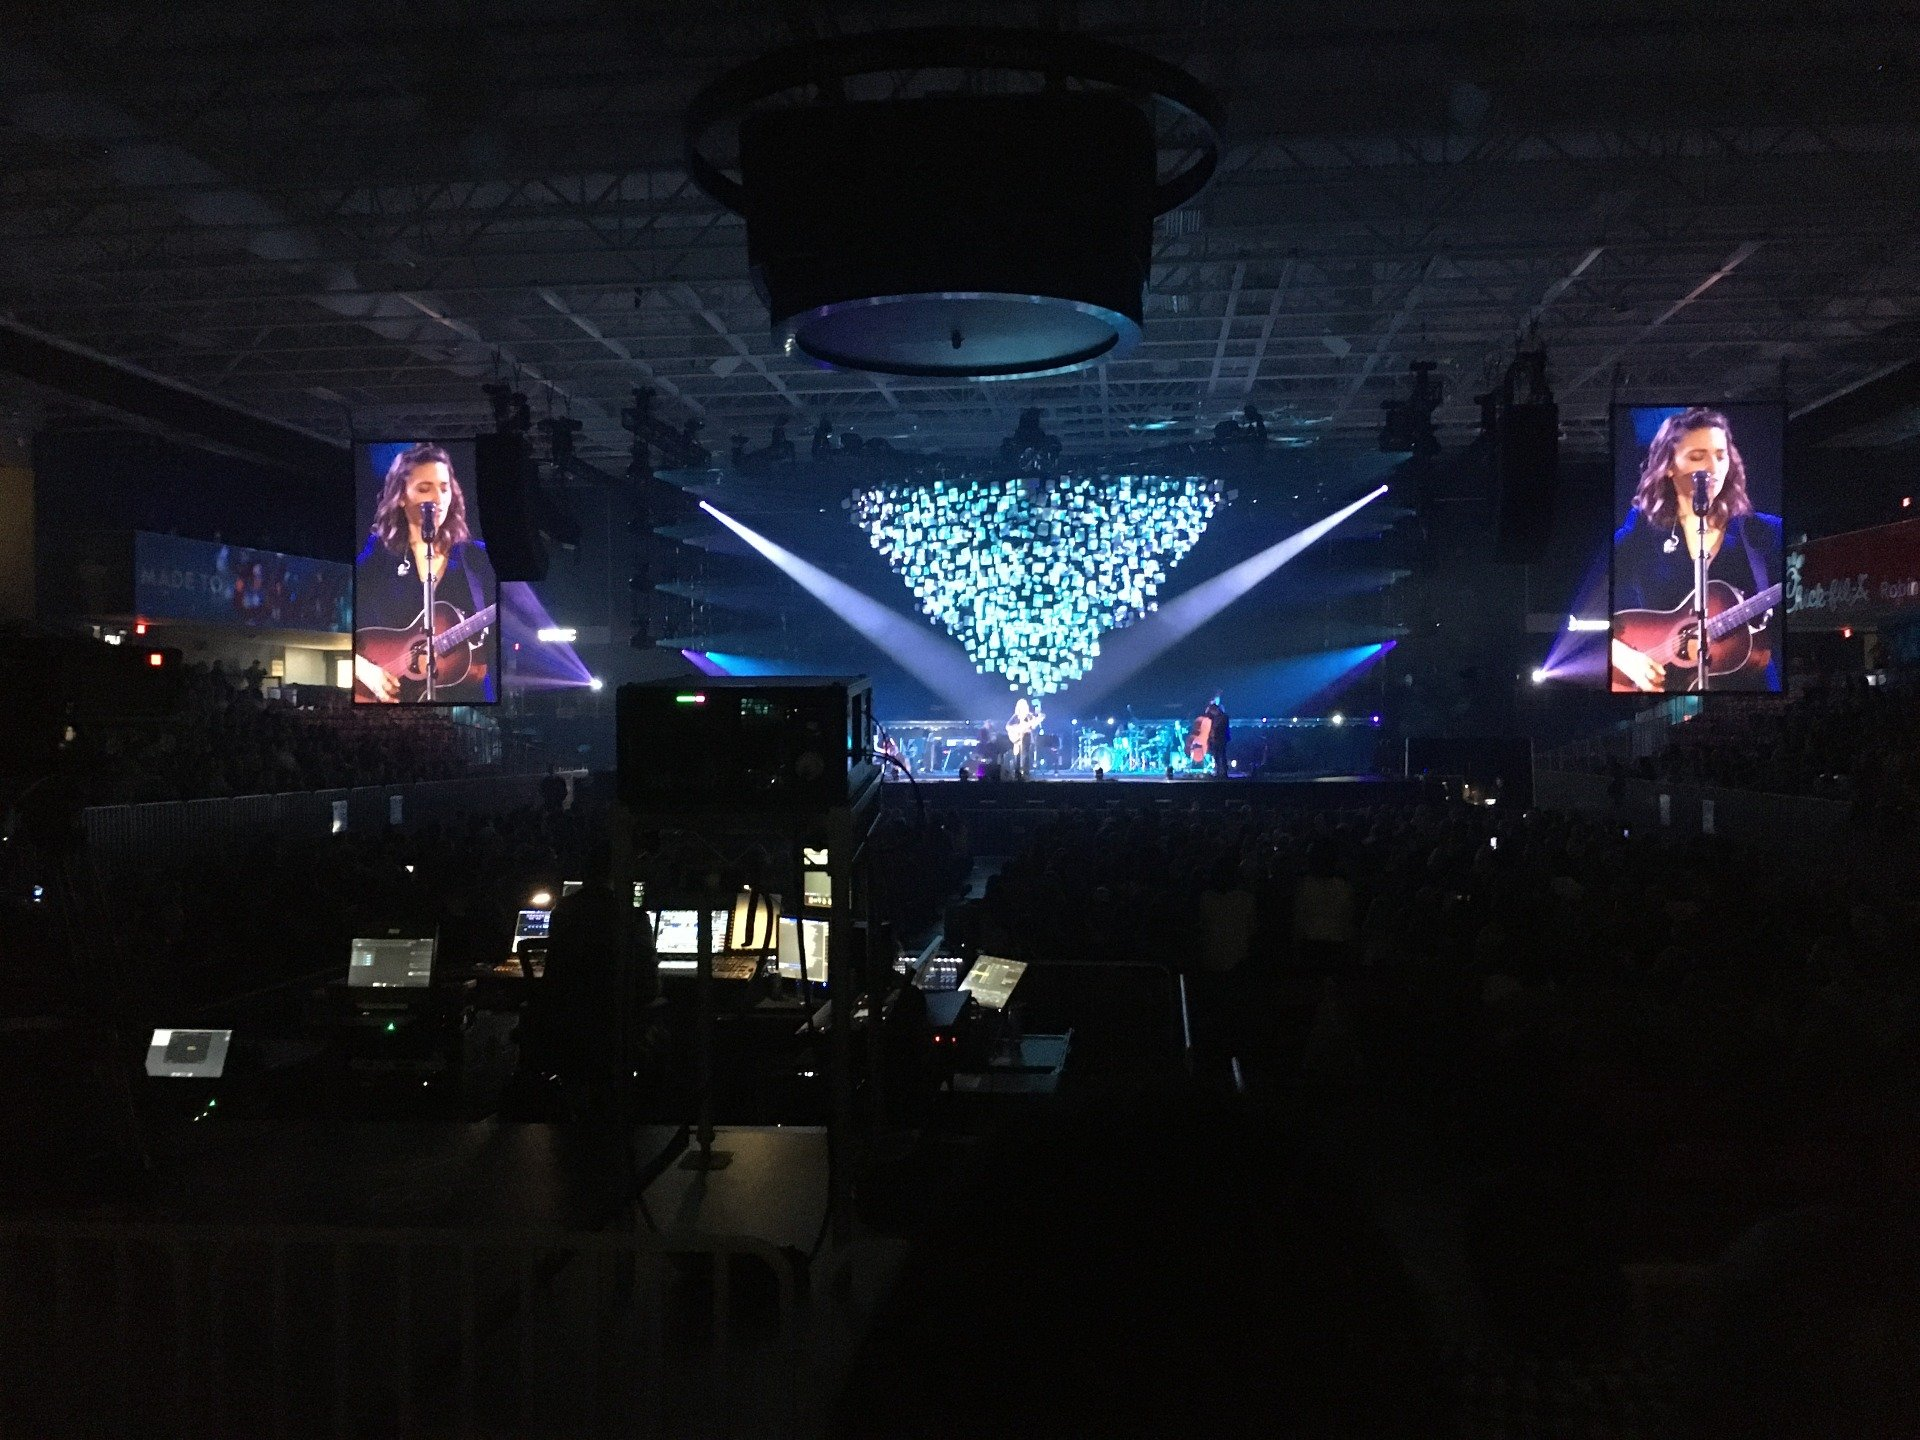 UPMC Events Center Section 110 Row D Seat 6